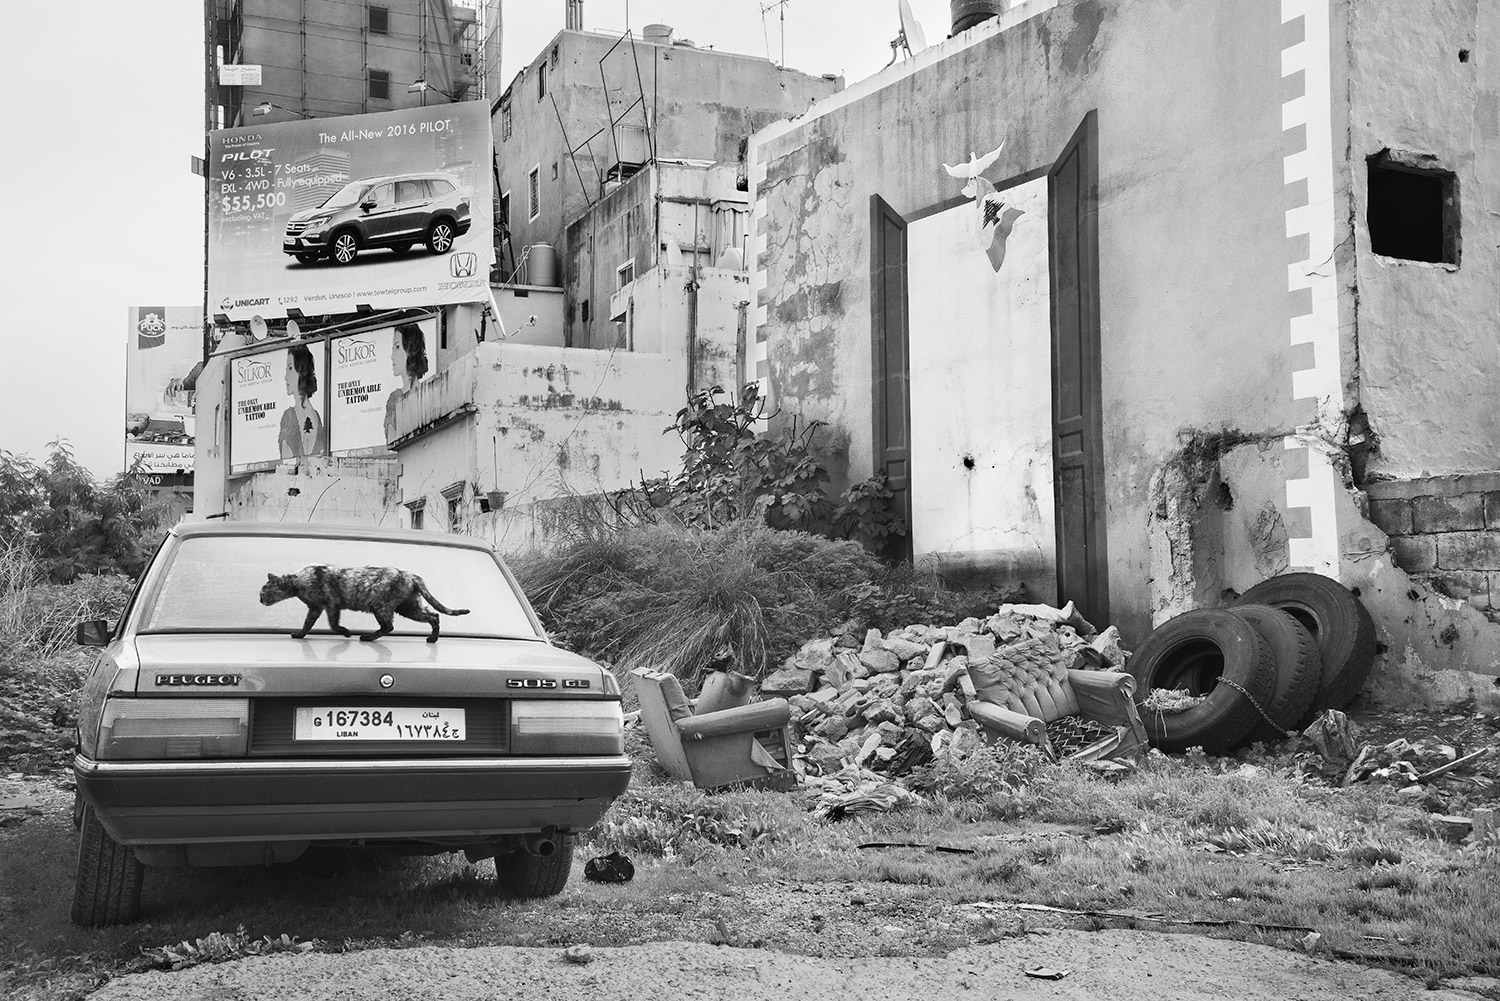 Manal Abu-Shaheen<br>Untitled (Cat). Beirut, Lebanon<br>2016<br>Archival fiber inkjet print mounted on aluminum<br>16 x 24 in